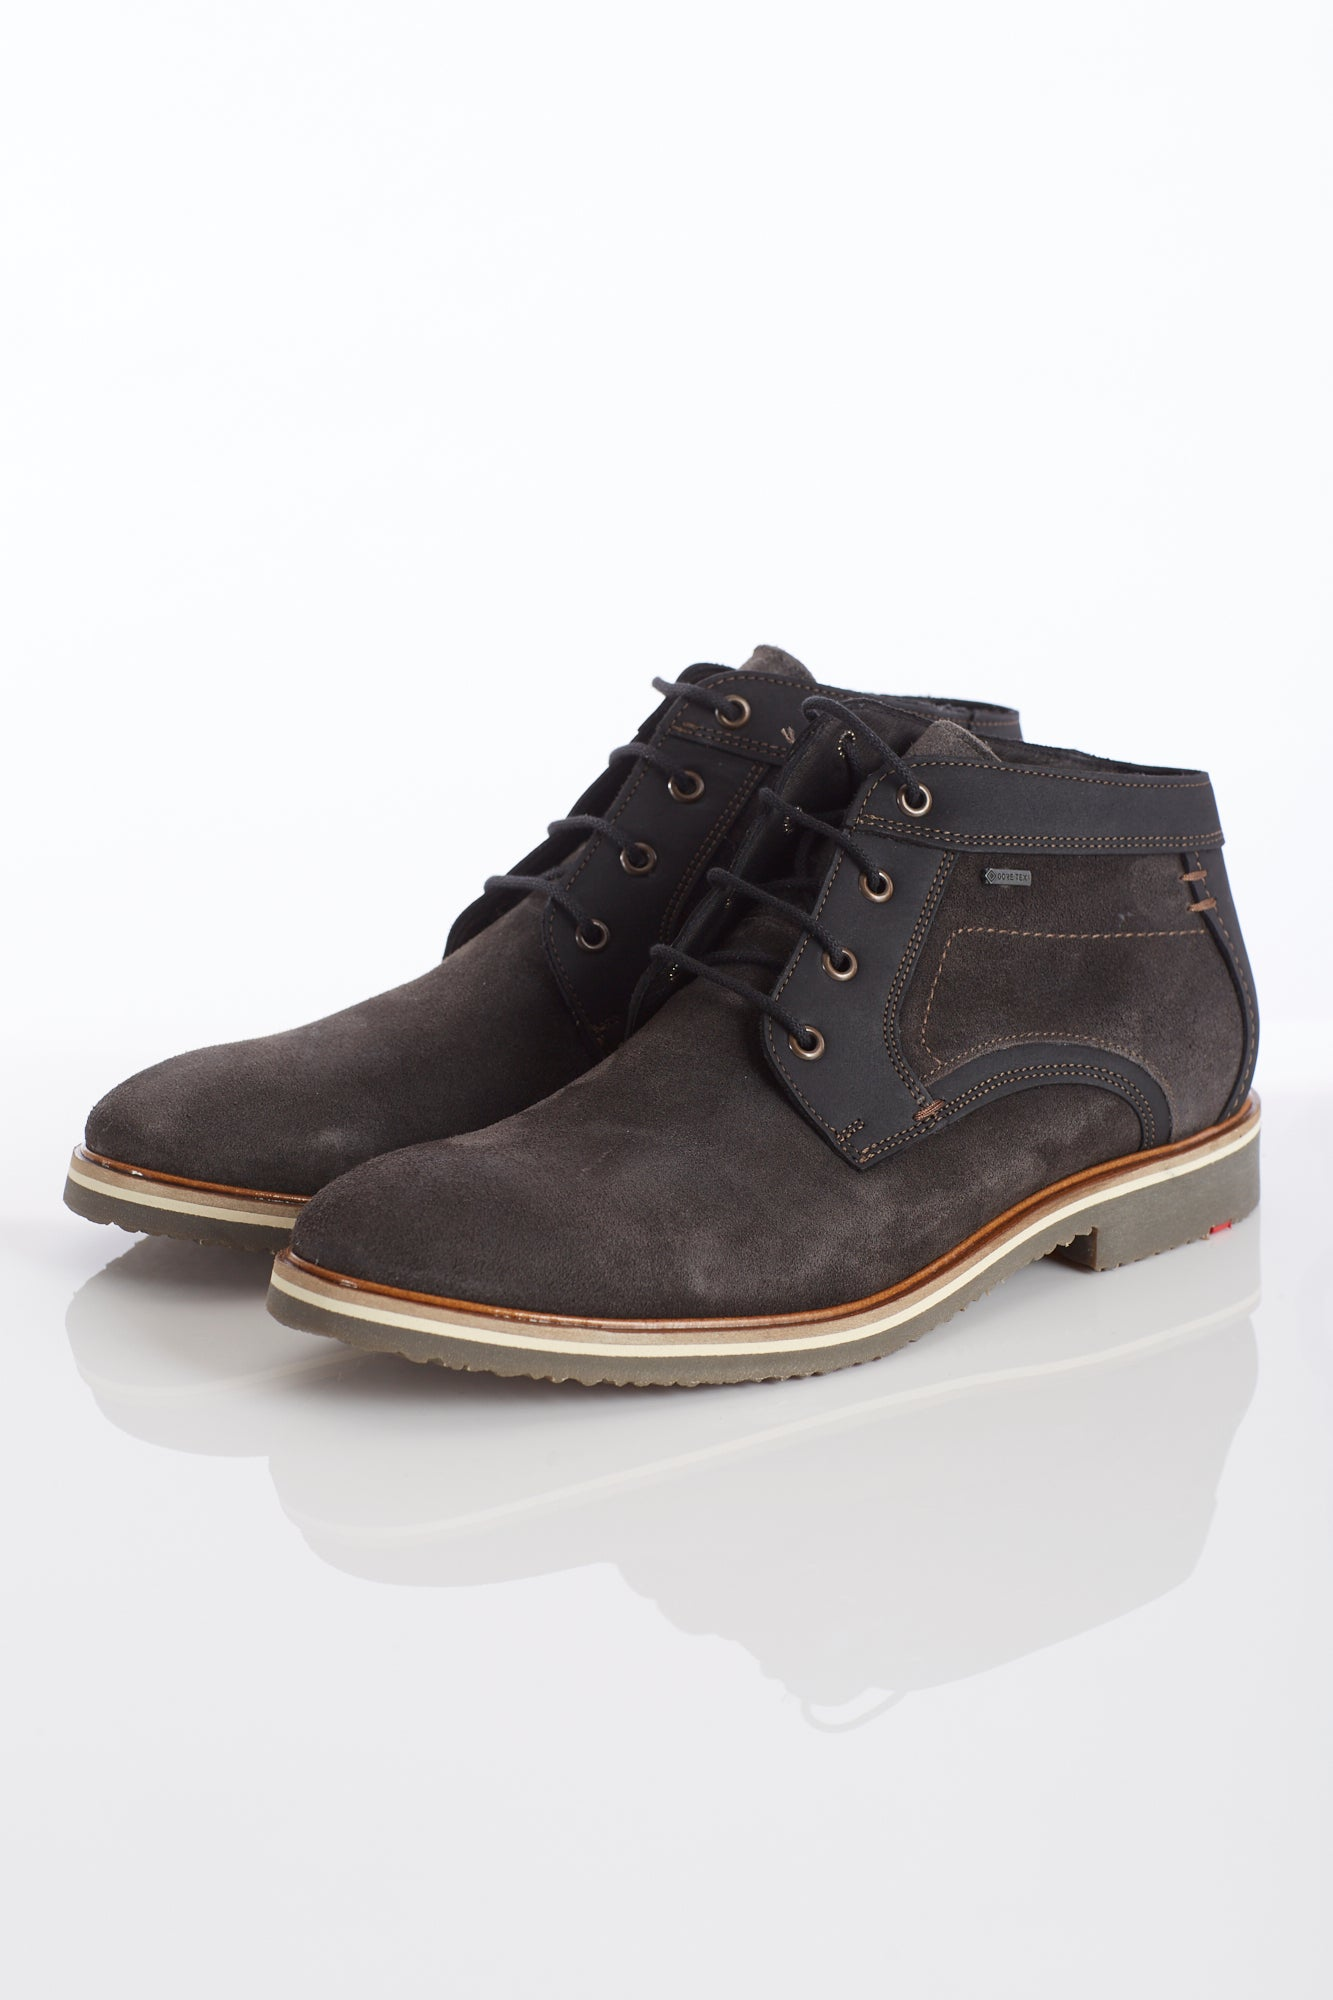 Lloyd 'Valentin' Goretex Grey Chukka Boot